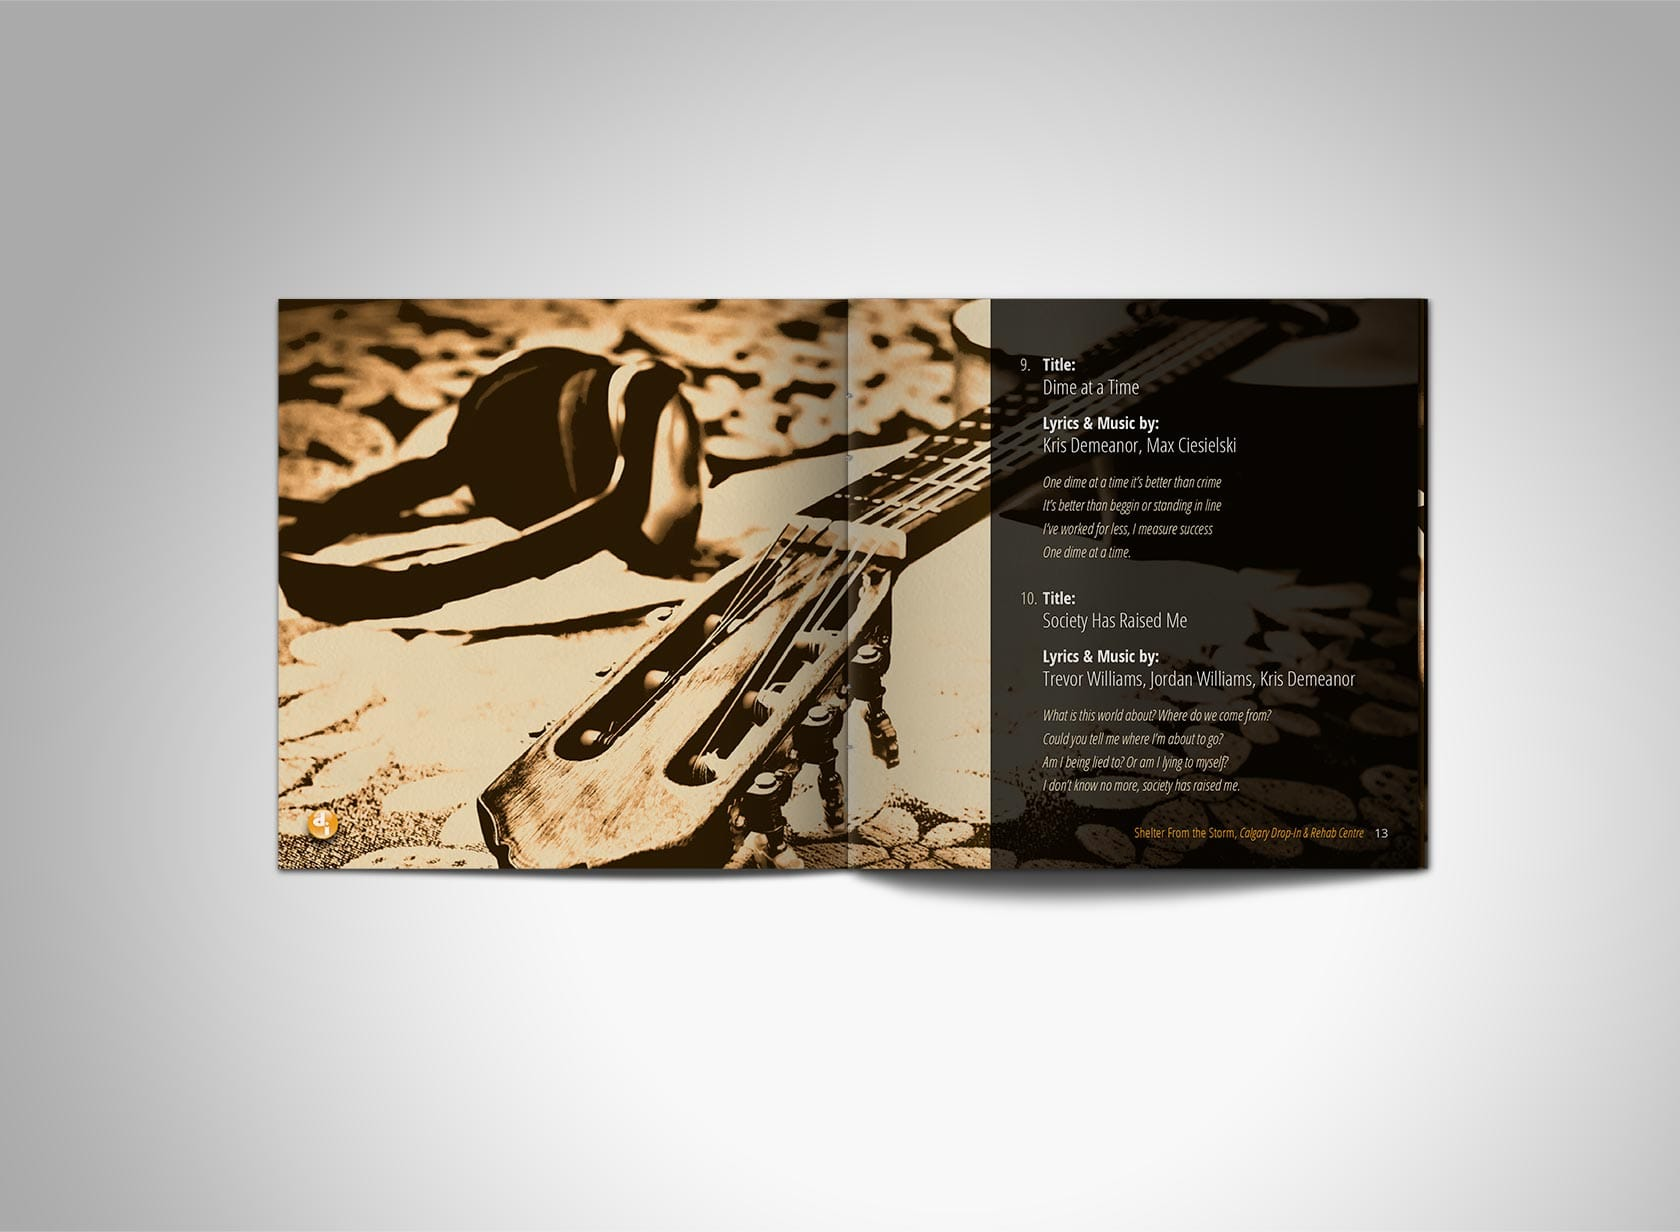 SFTS CD Project Image 01 - Event Program Design, CD Case - CD Booklet, Inner Spread Pages 12/13